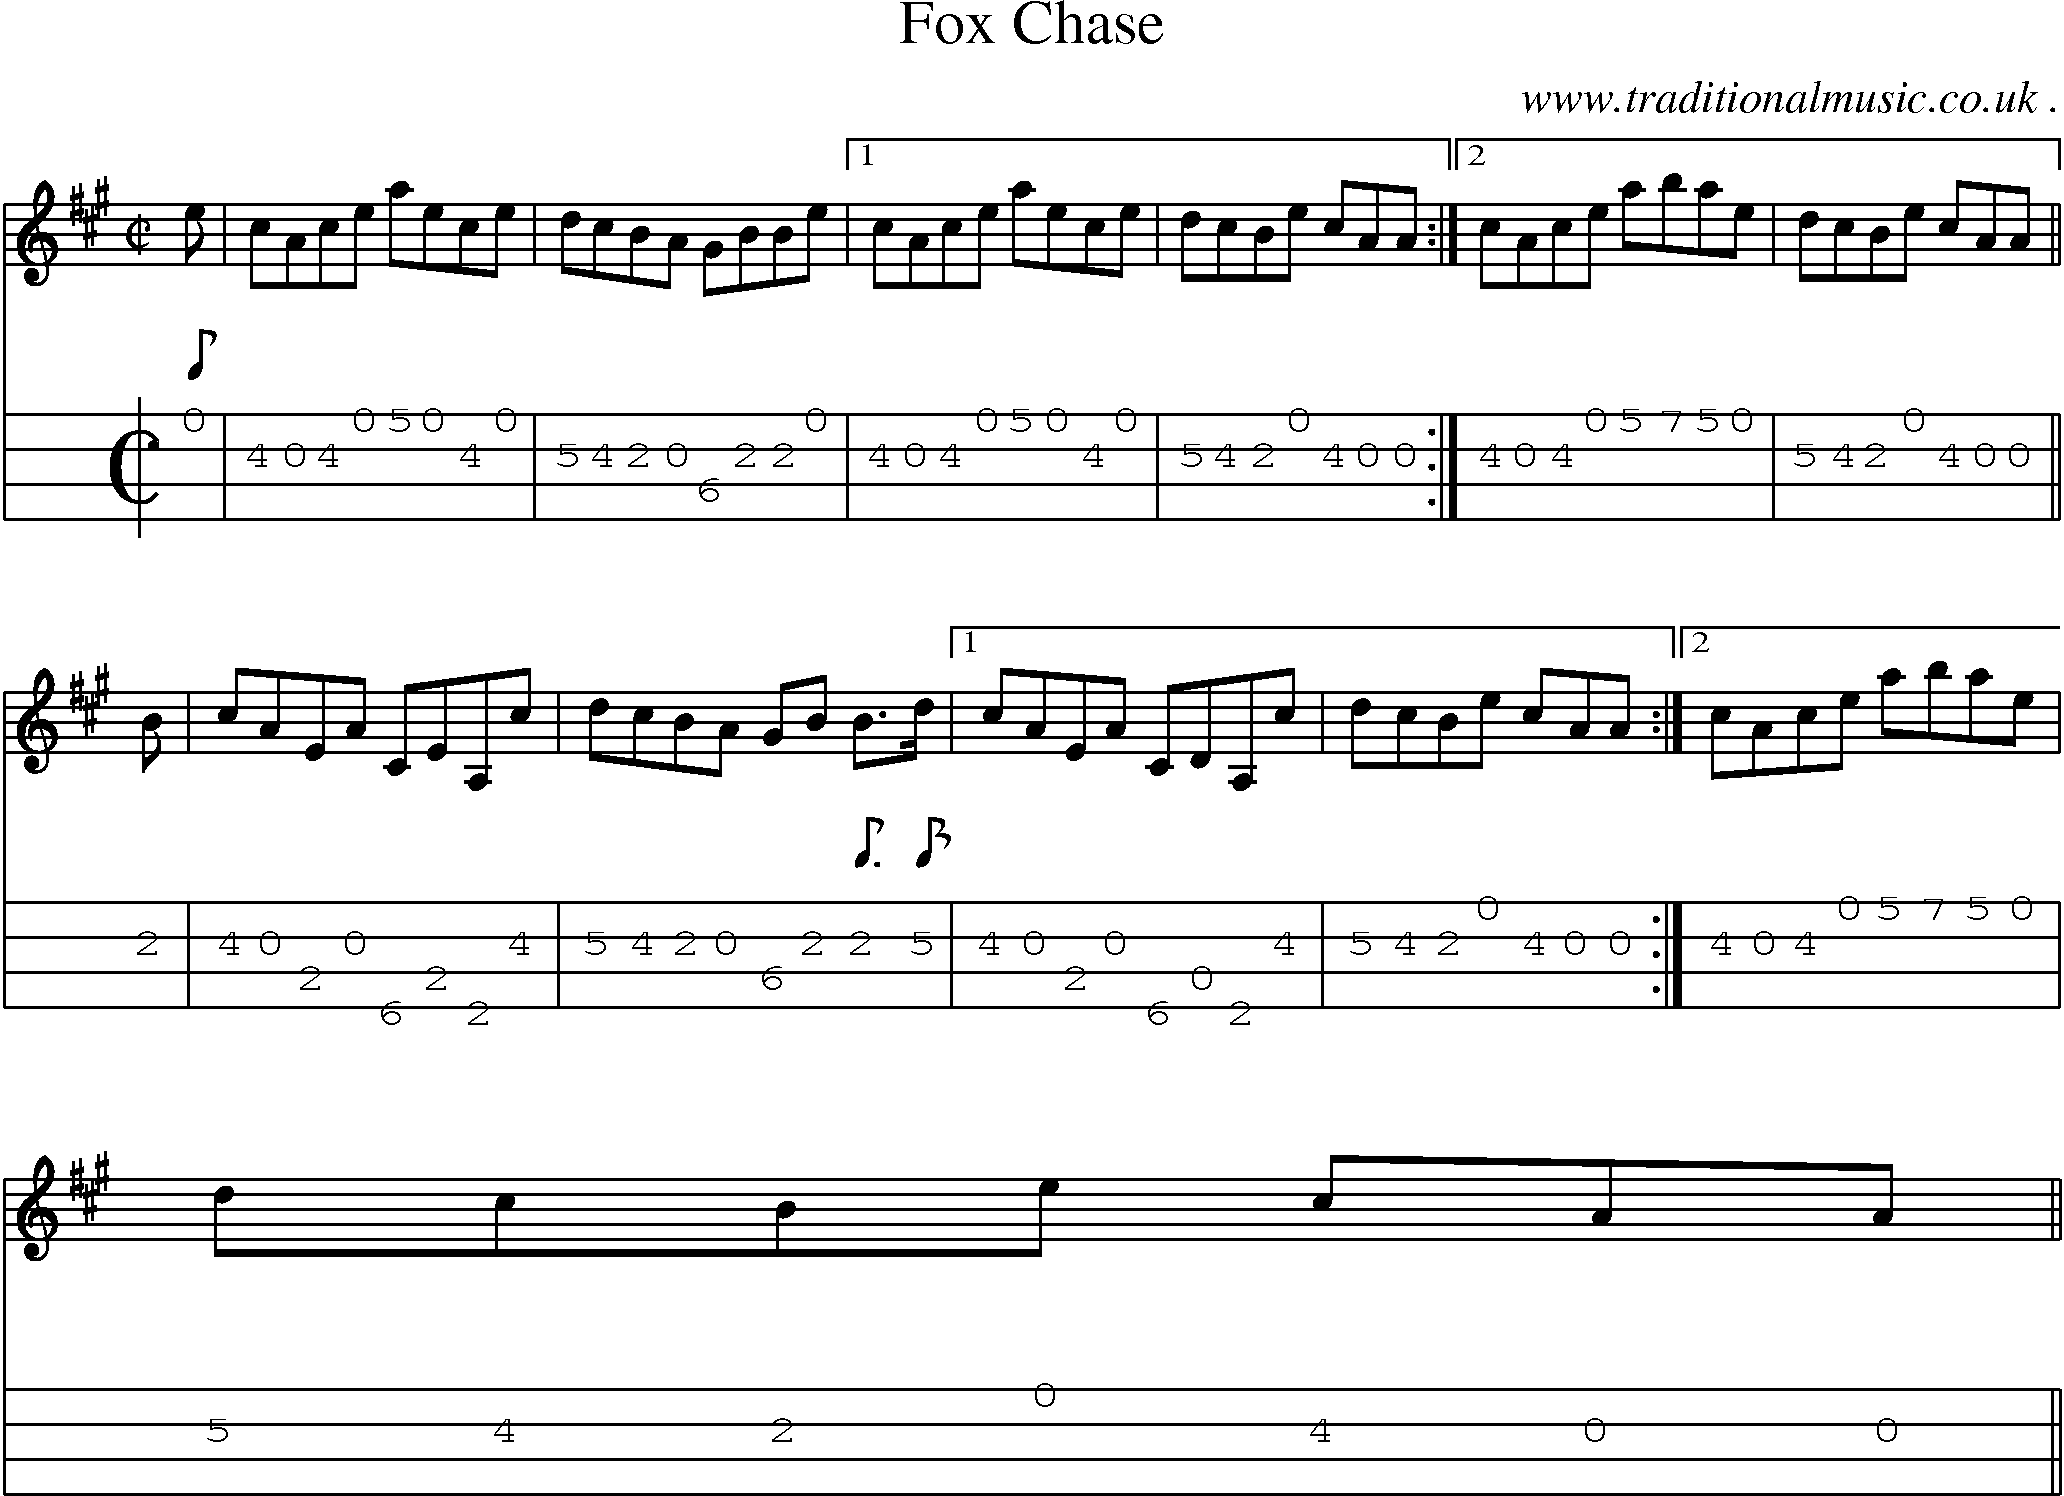 Sheet music score chords and mandolin tabs for fox chase sheet music score chords and mandolin tabs for fox chase hexwebz Choice Image